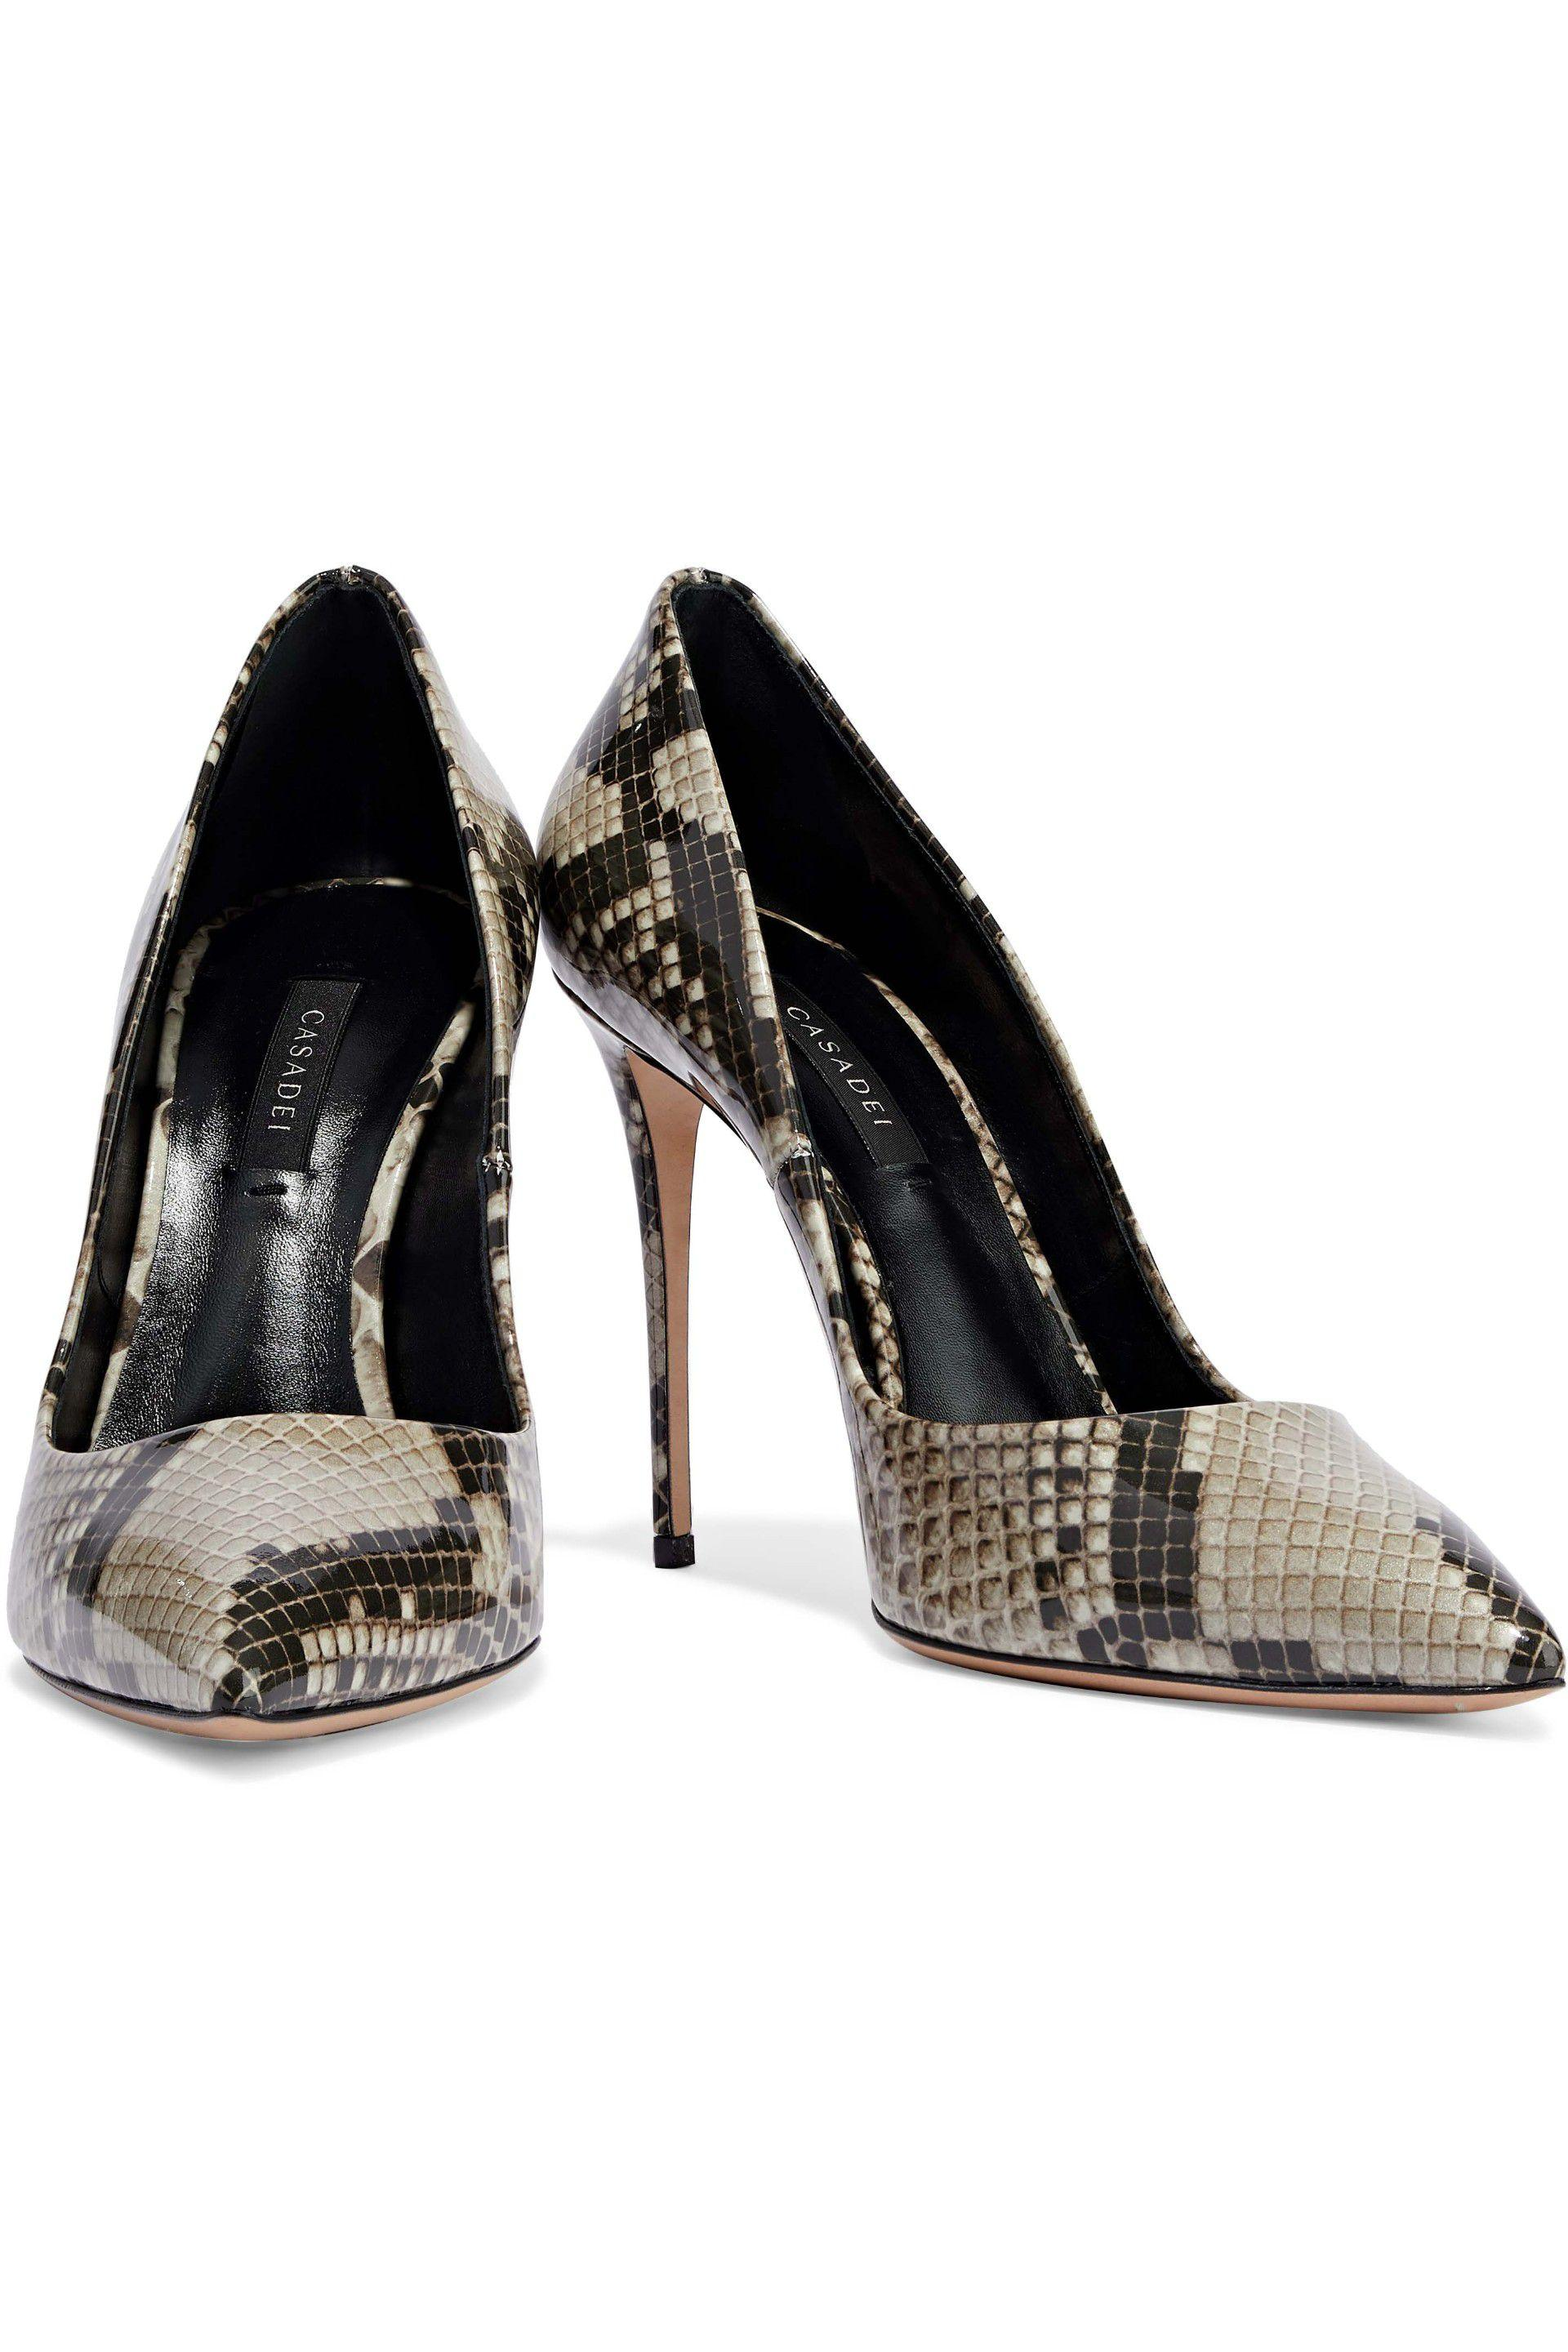 98fed9714c8e Lyst - Casadei Woman Perfect Snake-print Patent-leather Pumps Animal ...